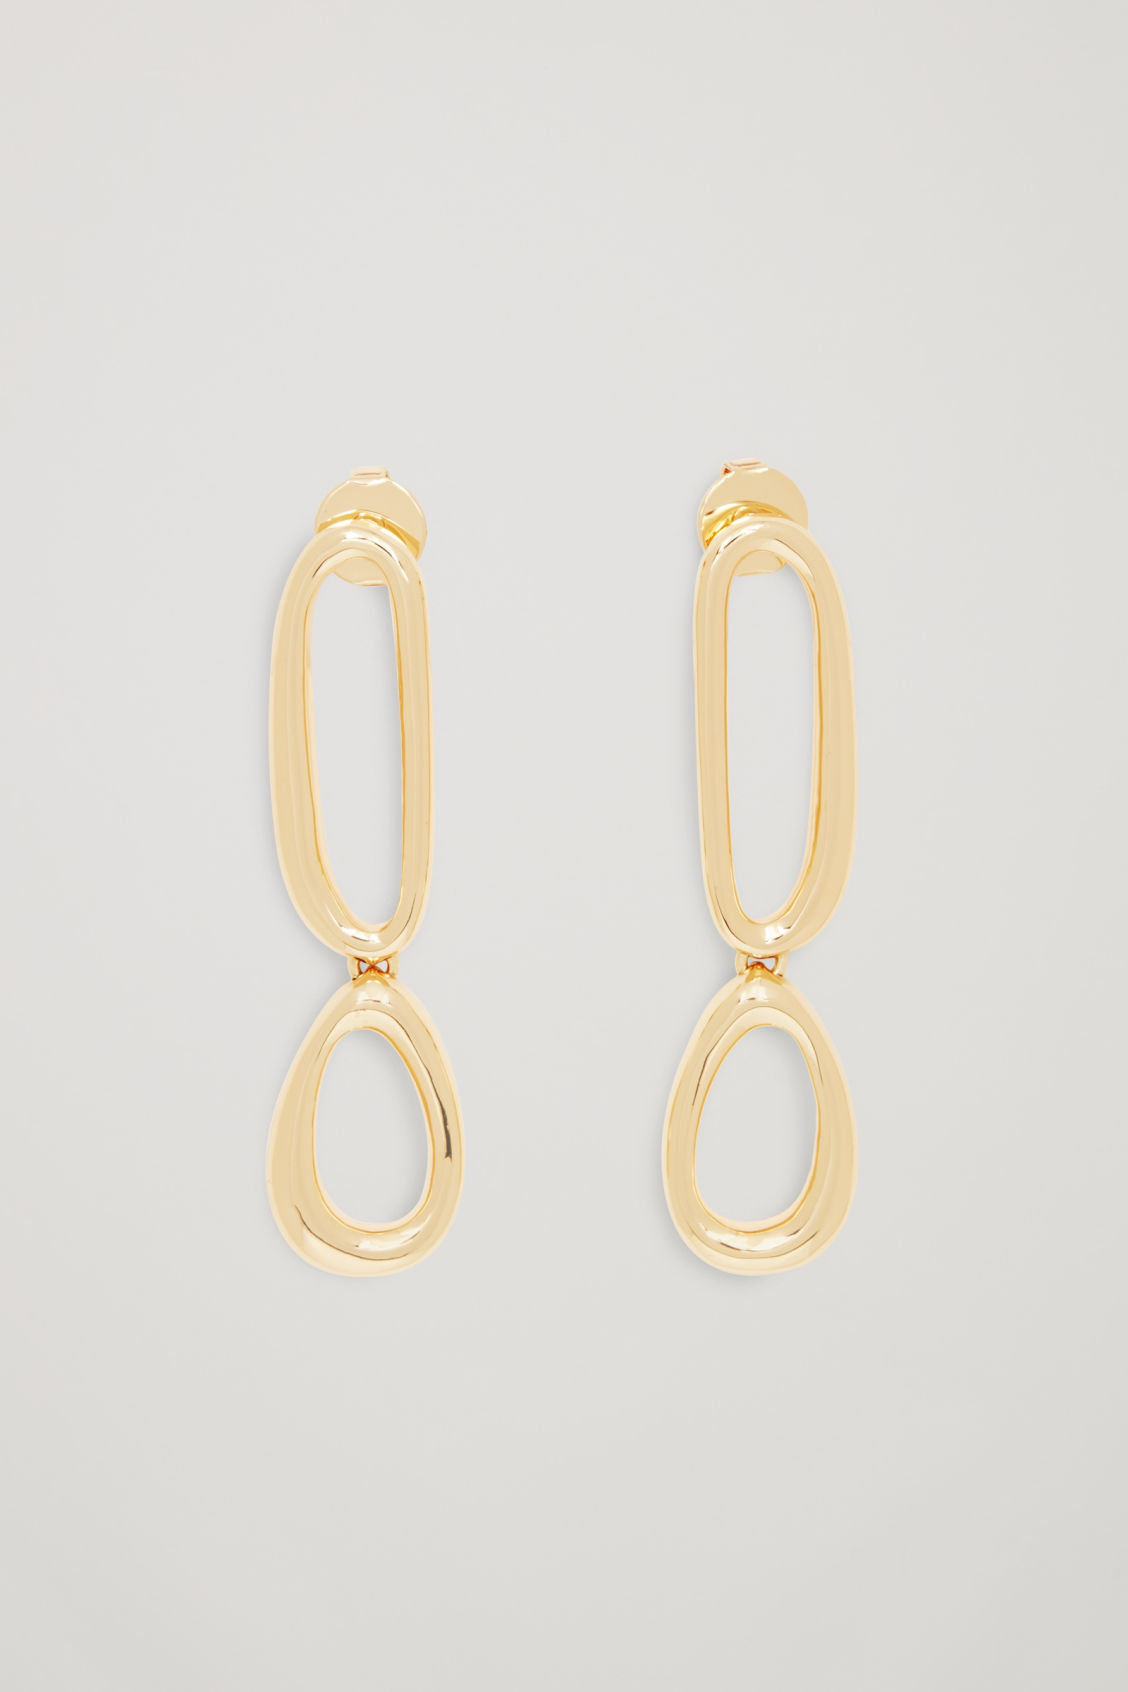 COS DROP EARRINGS WITH UNEVEN HOOPS